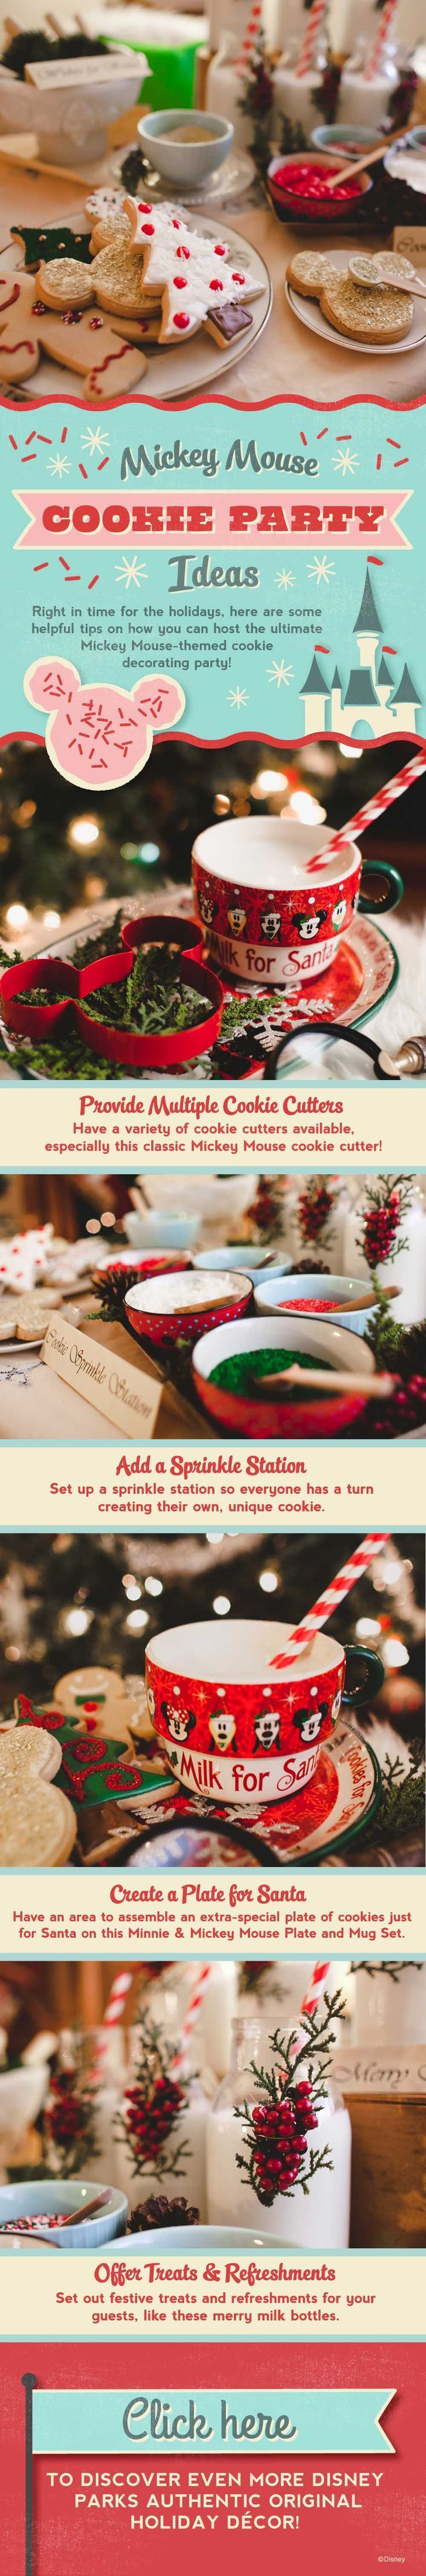 Disney Christmas Party Ideas Part - 45: Mickey Mouse Cookie Party Ideas From Walt Disney World!